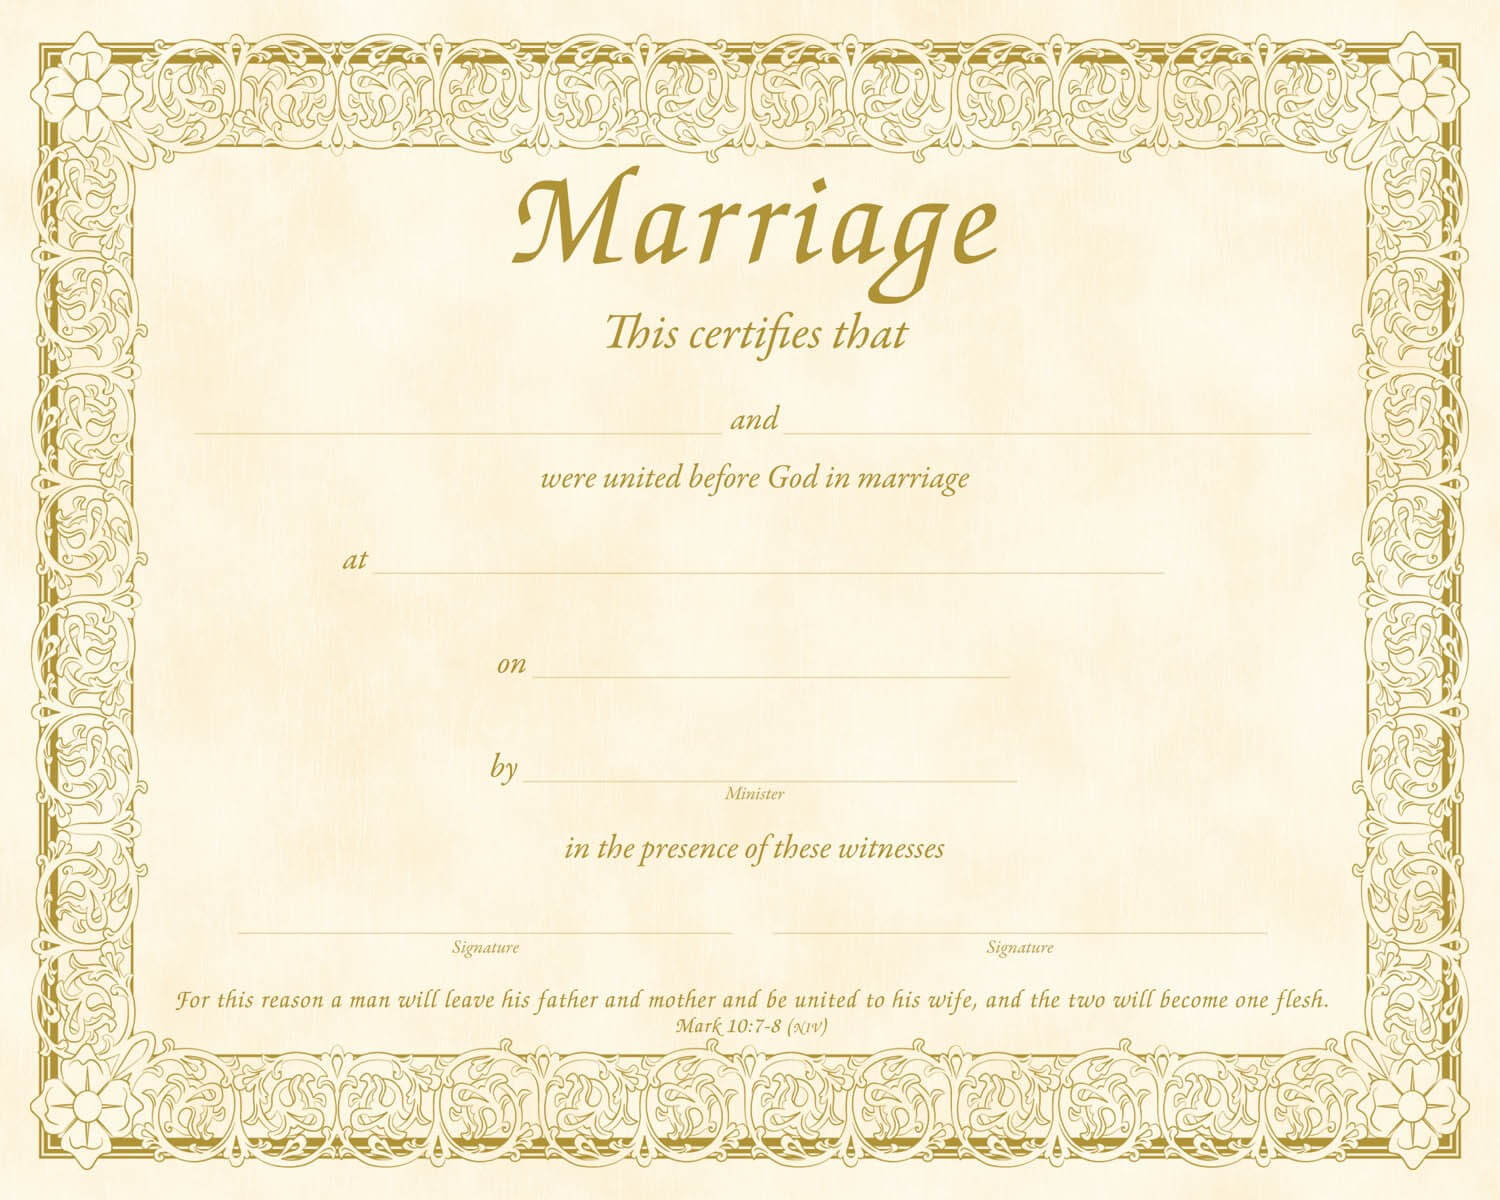 Christian Certificate Template ] - Christian Marriage Within Christian Certificate Template